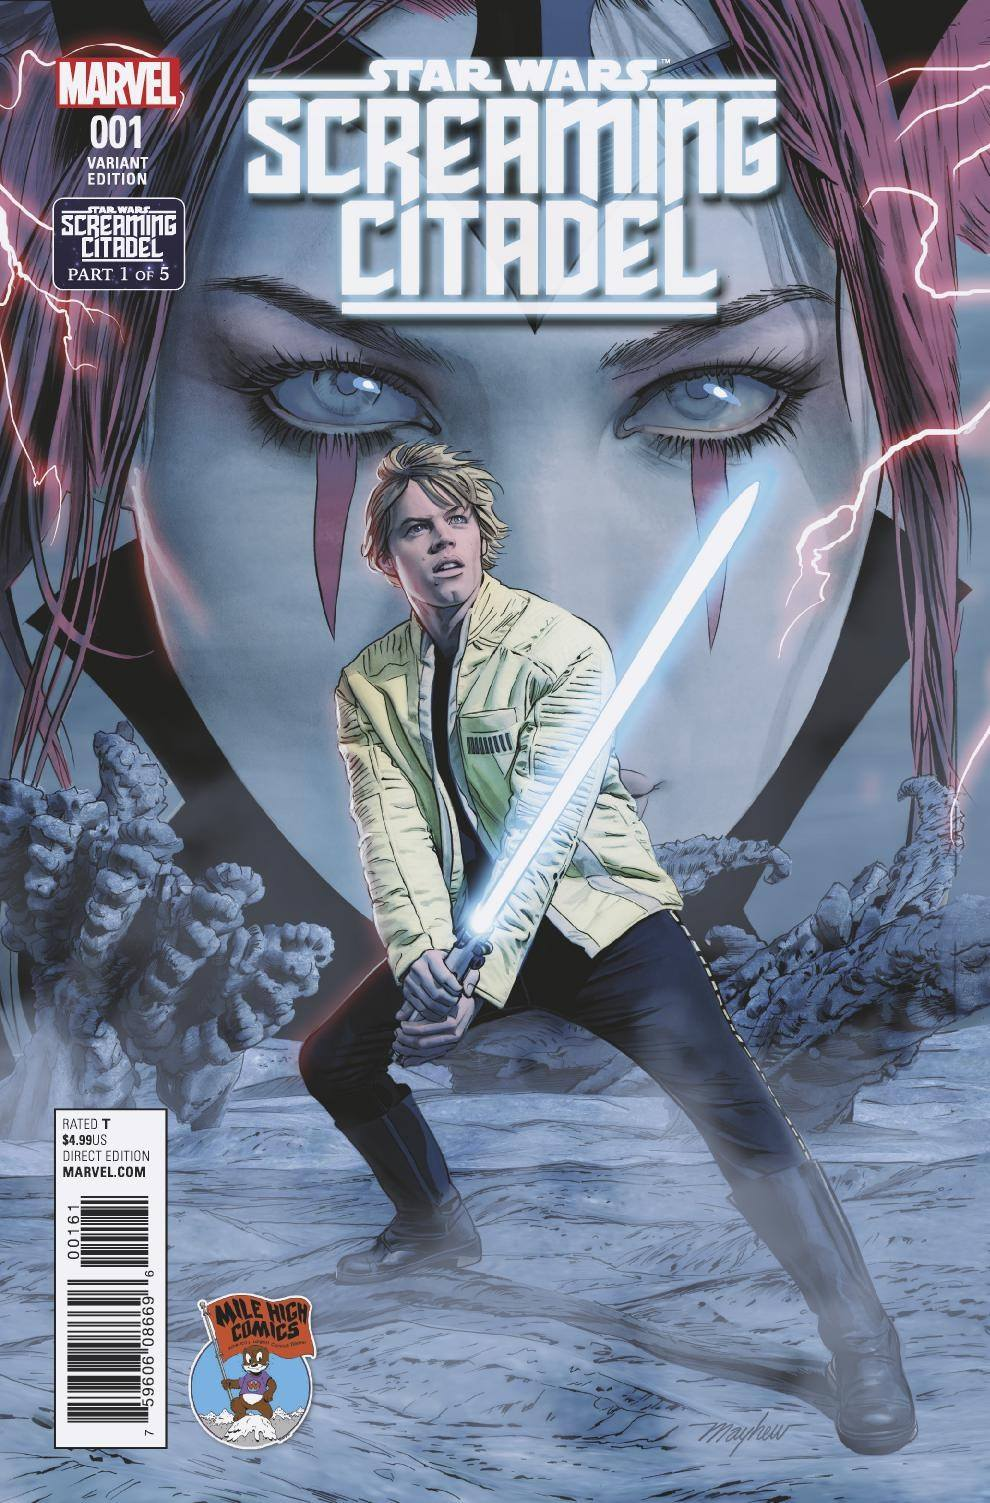 The Screaming Citadel #1 (Mike Mayhew Mile High Comics Variant Cover) (10.05.2017)